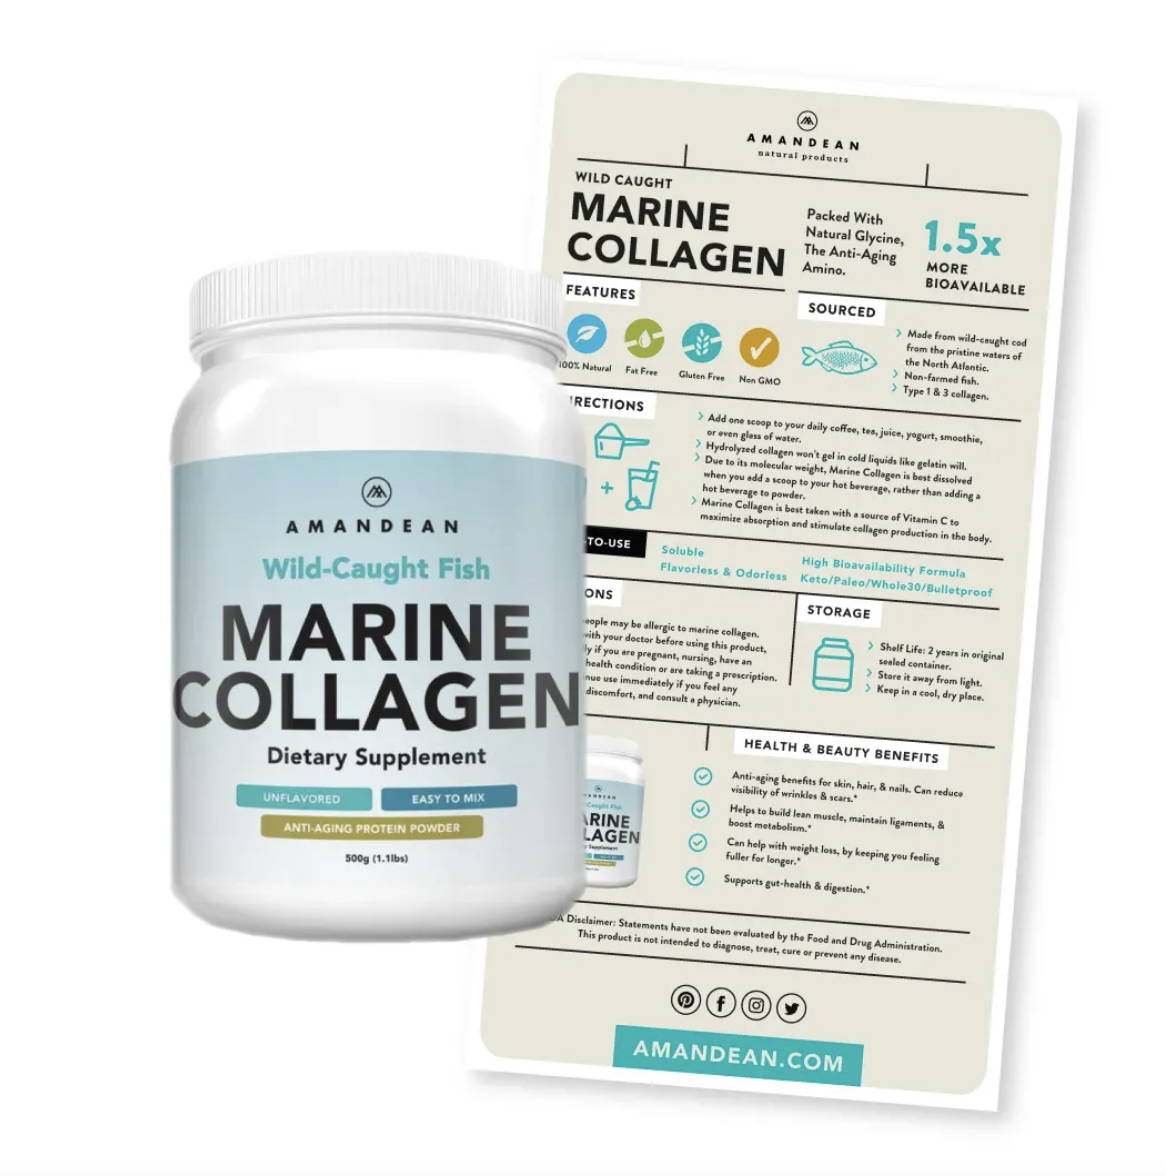 Amandean Wild-Caught Marine Collagen